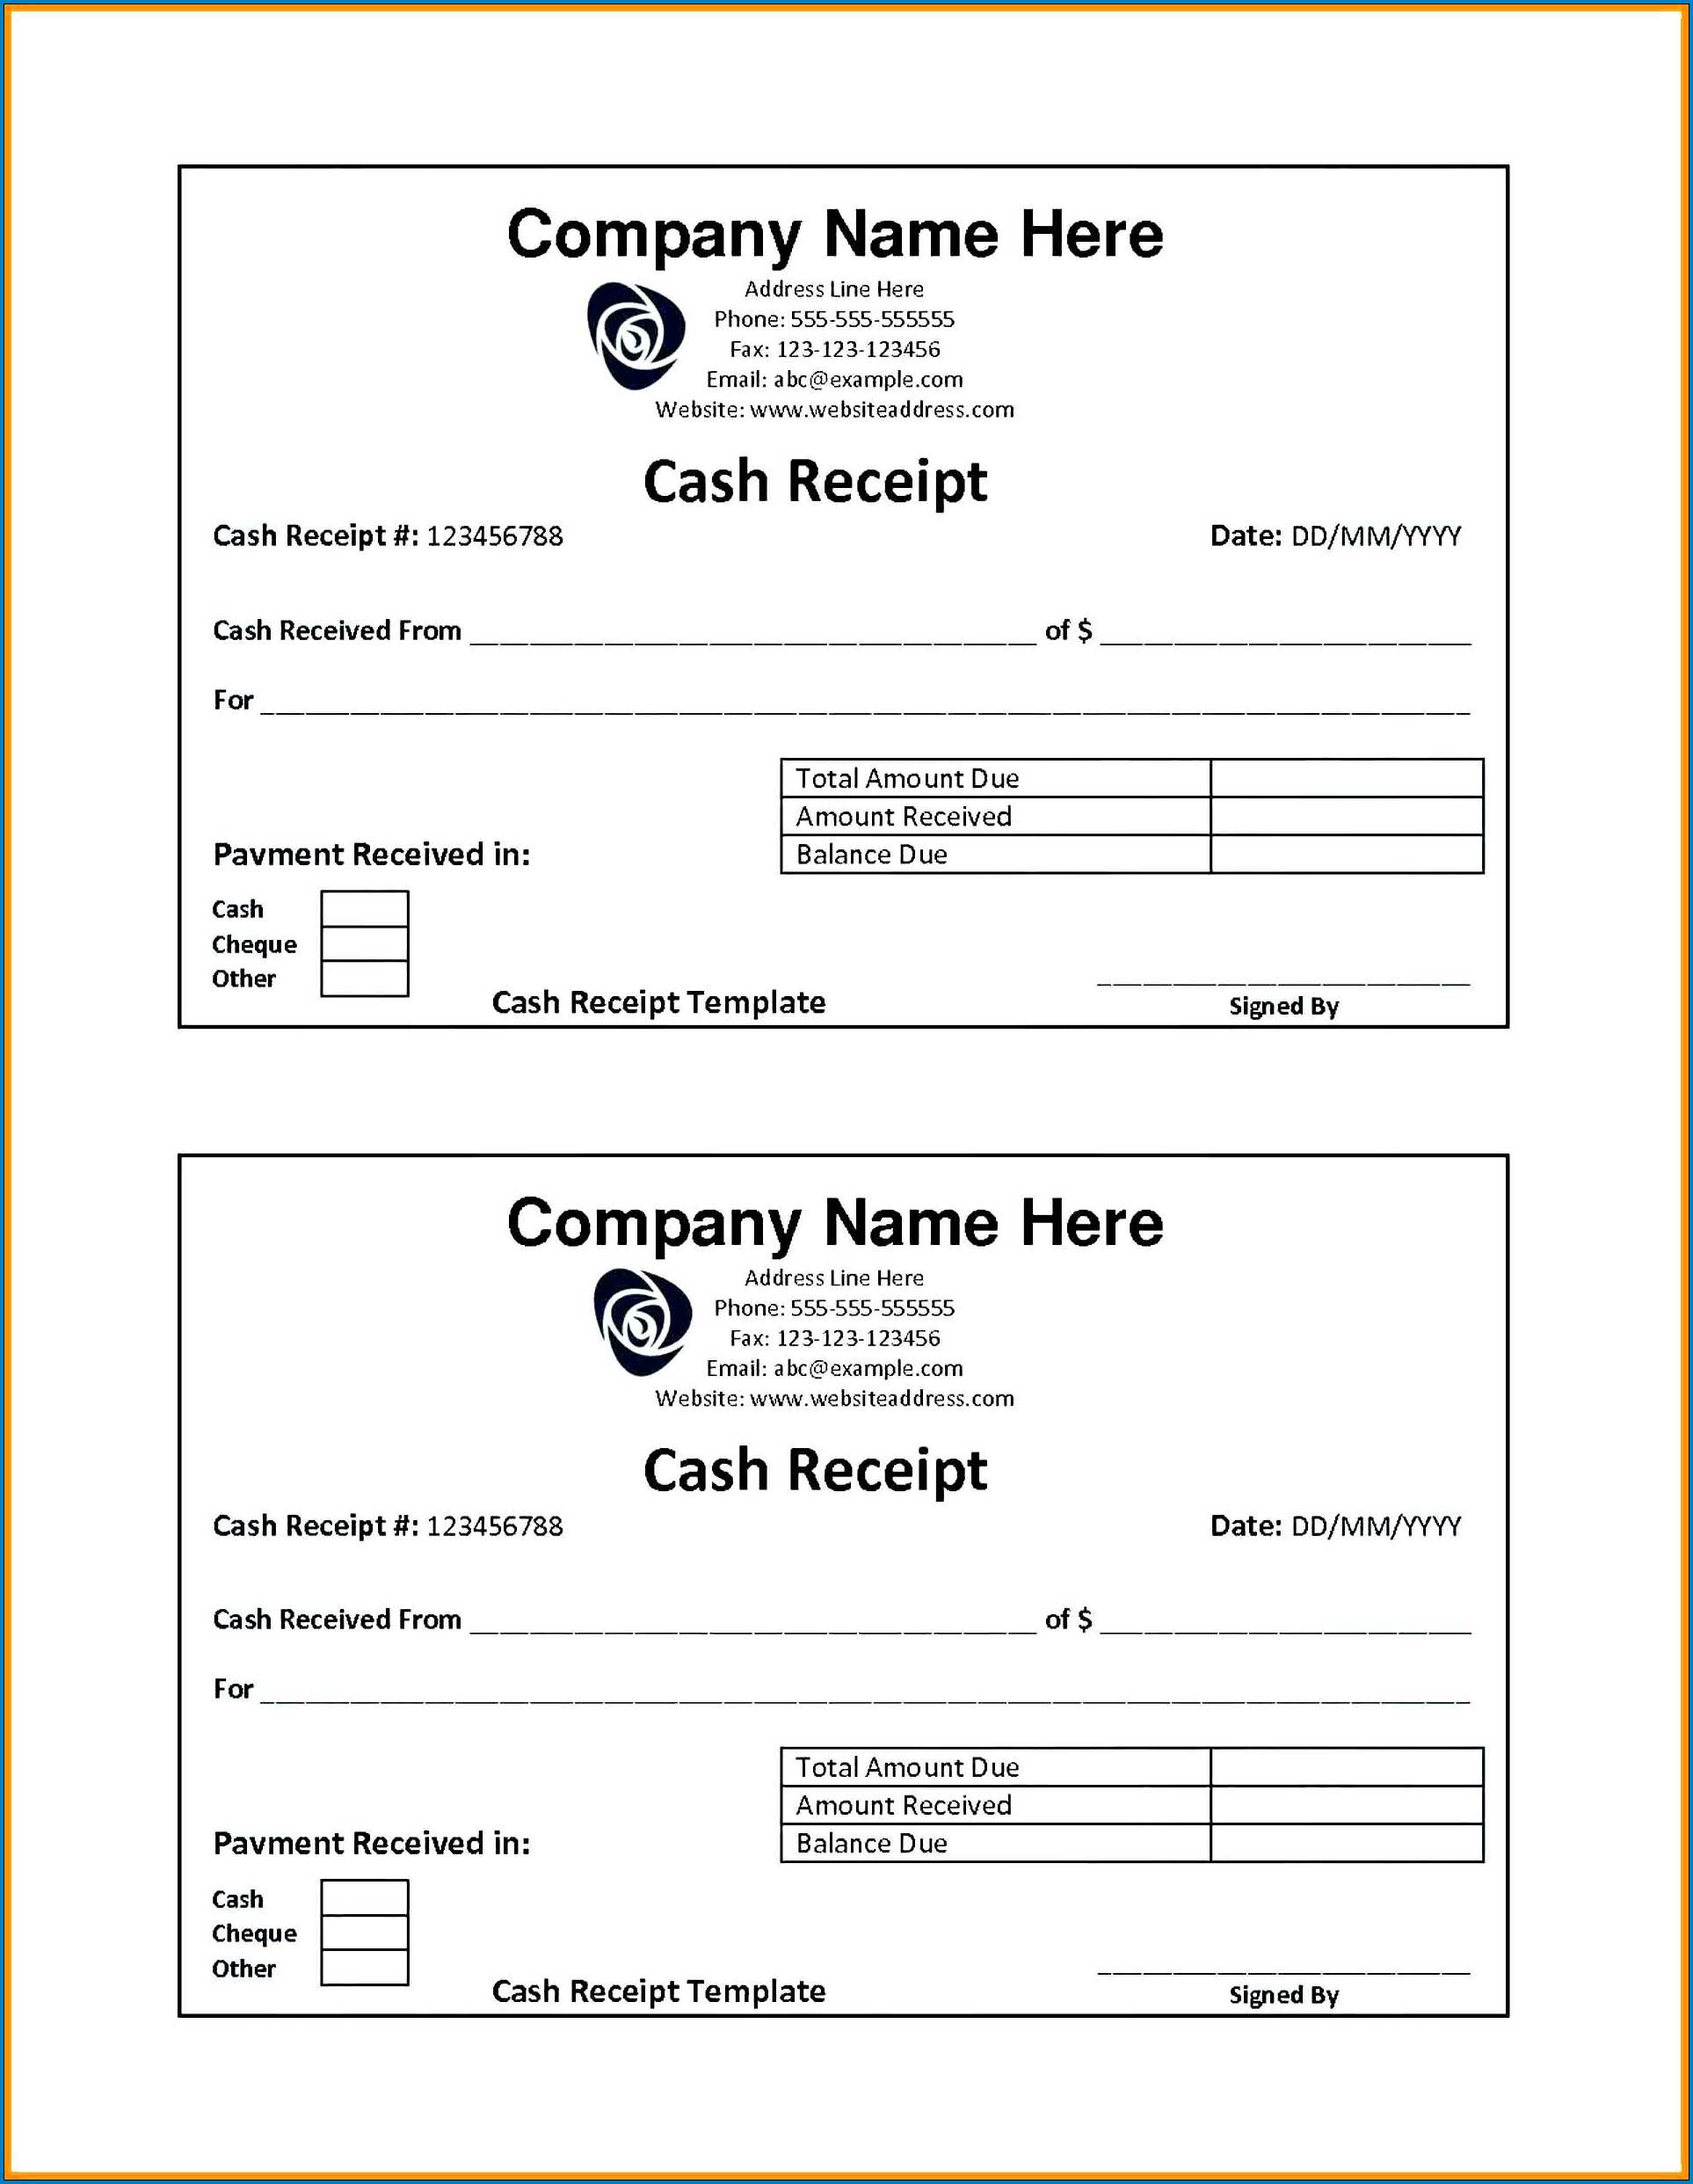 Sample of Simple Cash Receipt Template